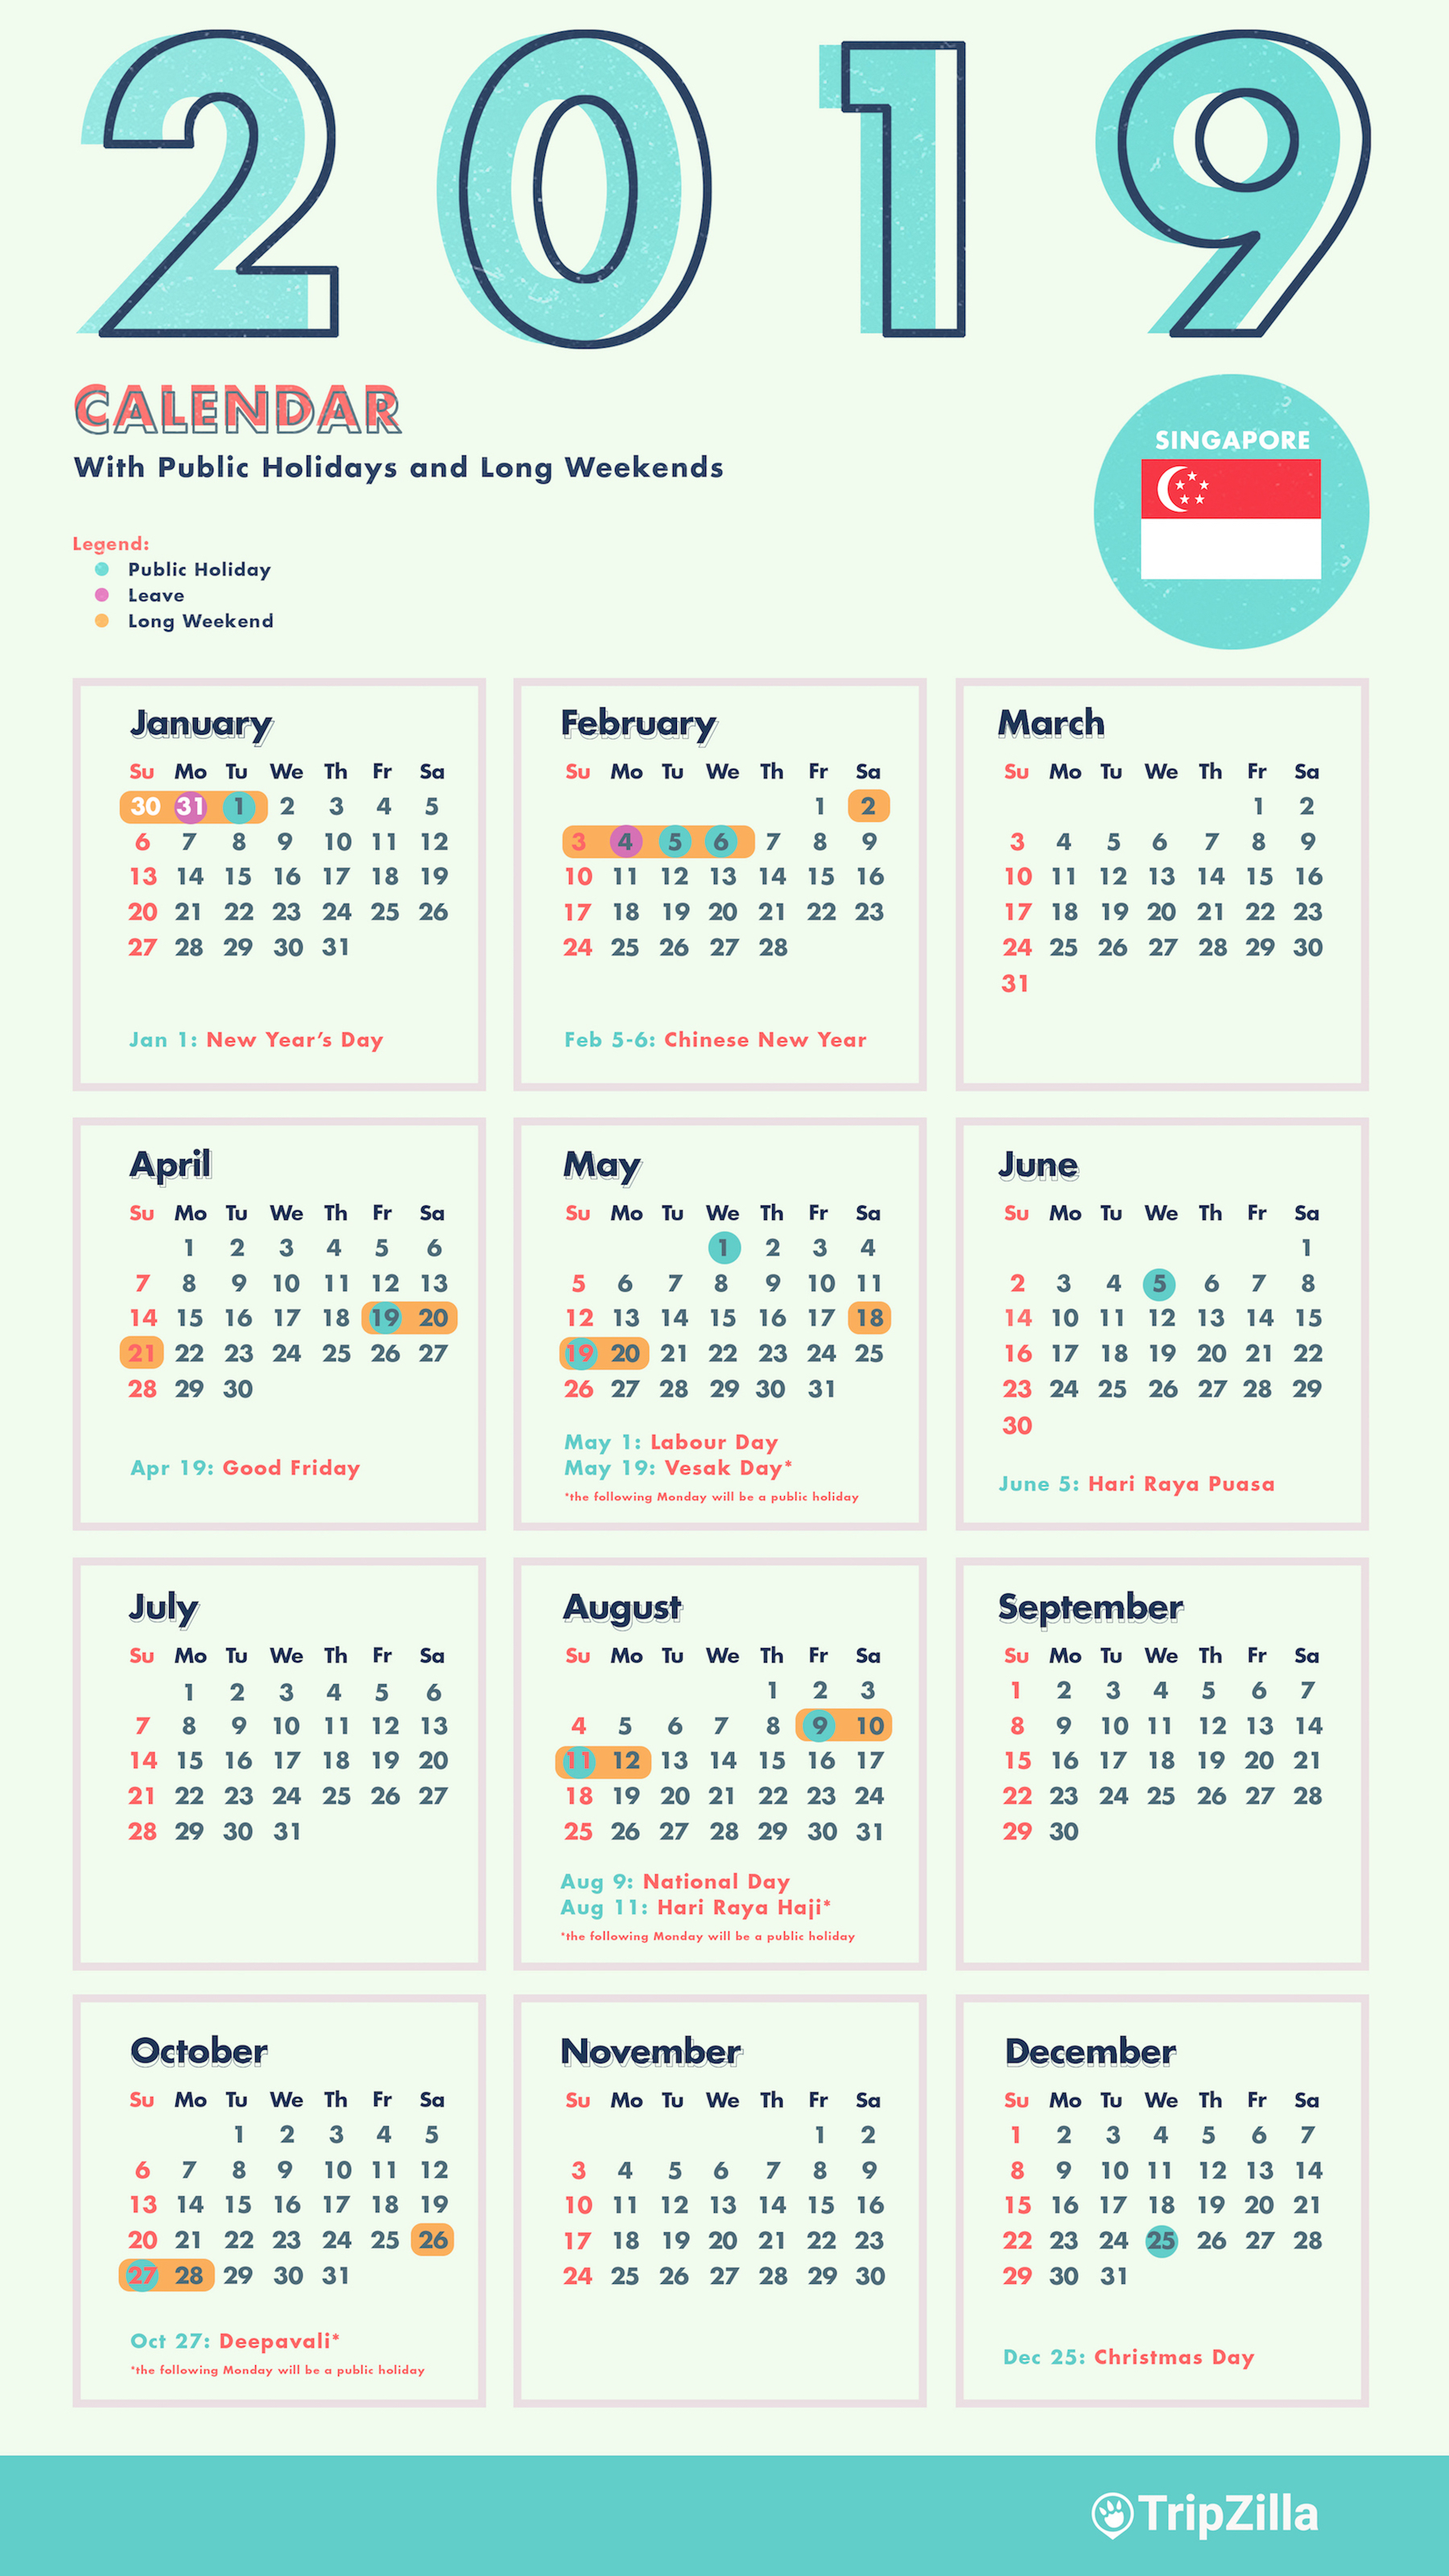 Next Year Calendar 2019 With Holidays 6 Long Weekends In Singapore Bonus Cheatsheet